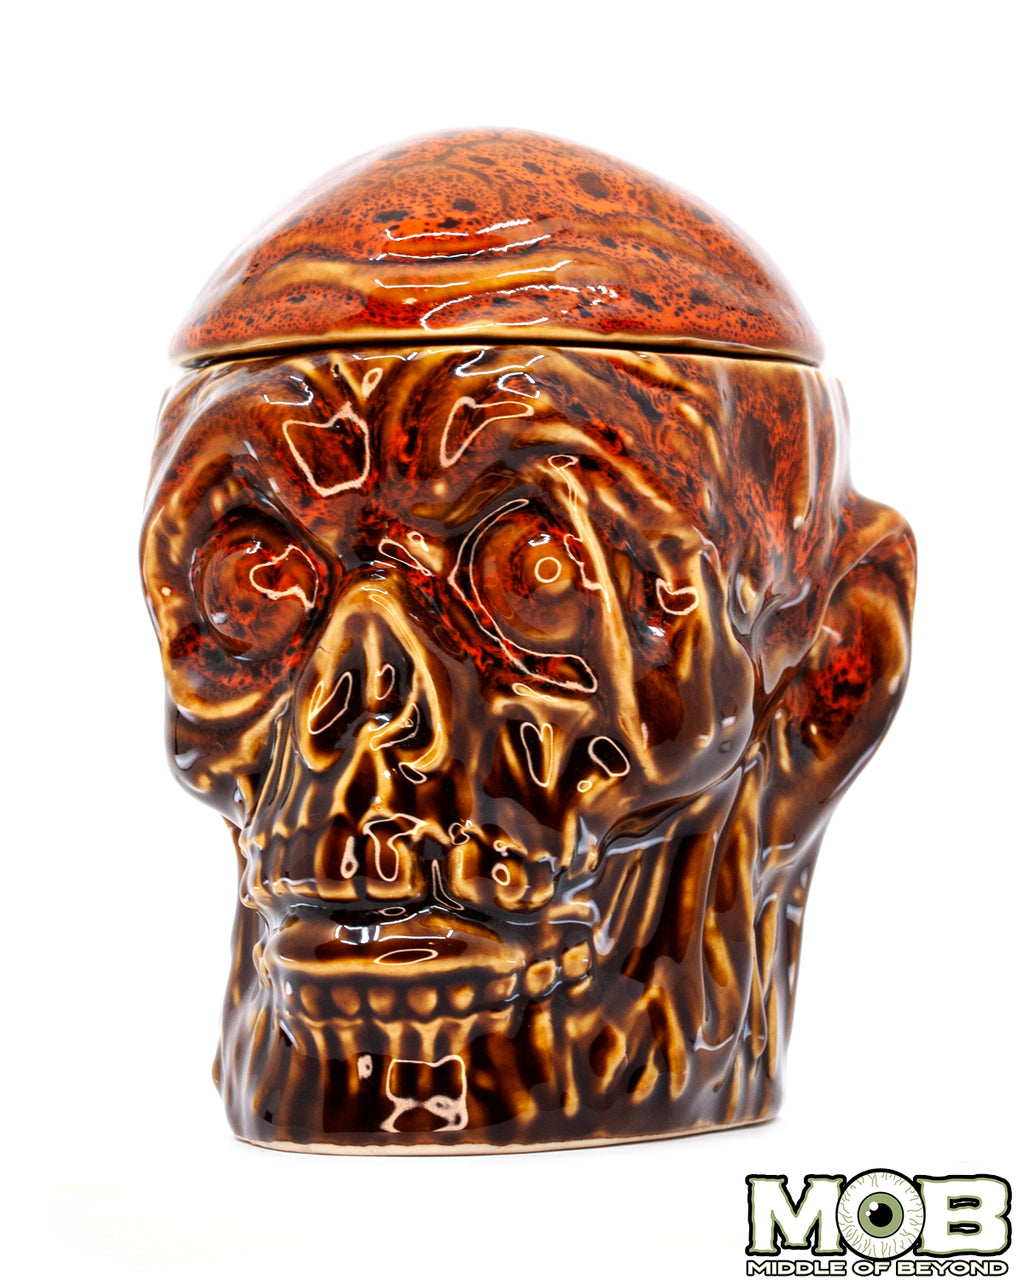 Return of the Living Dead Tarman Ceramic Mug: 2-4-5 Trioxin Variant